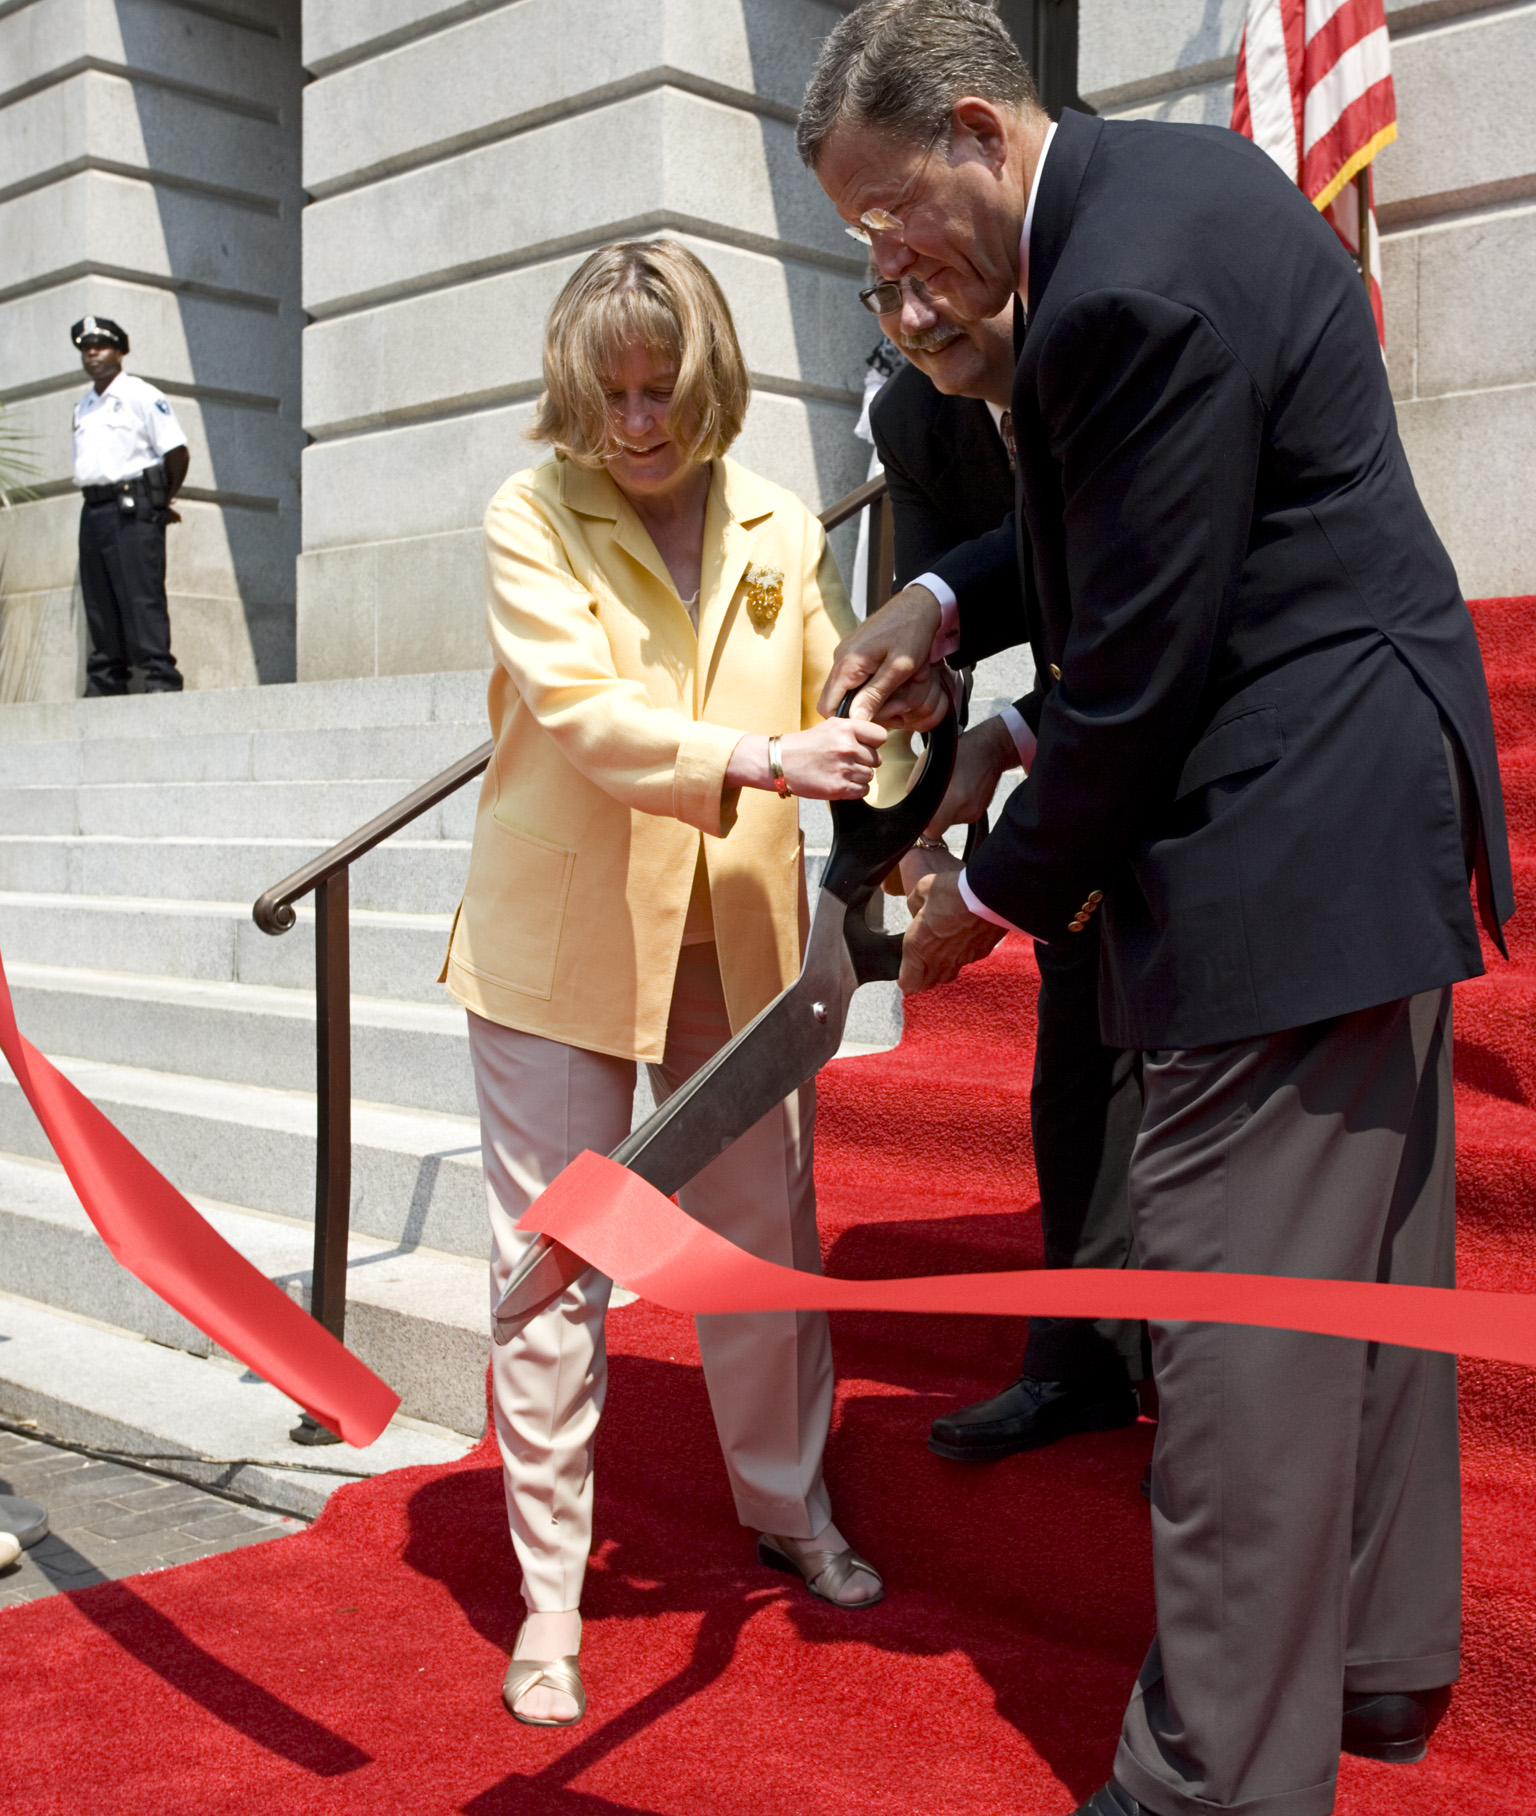 Three people cut a red ribbon with a large pair of scissors.